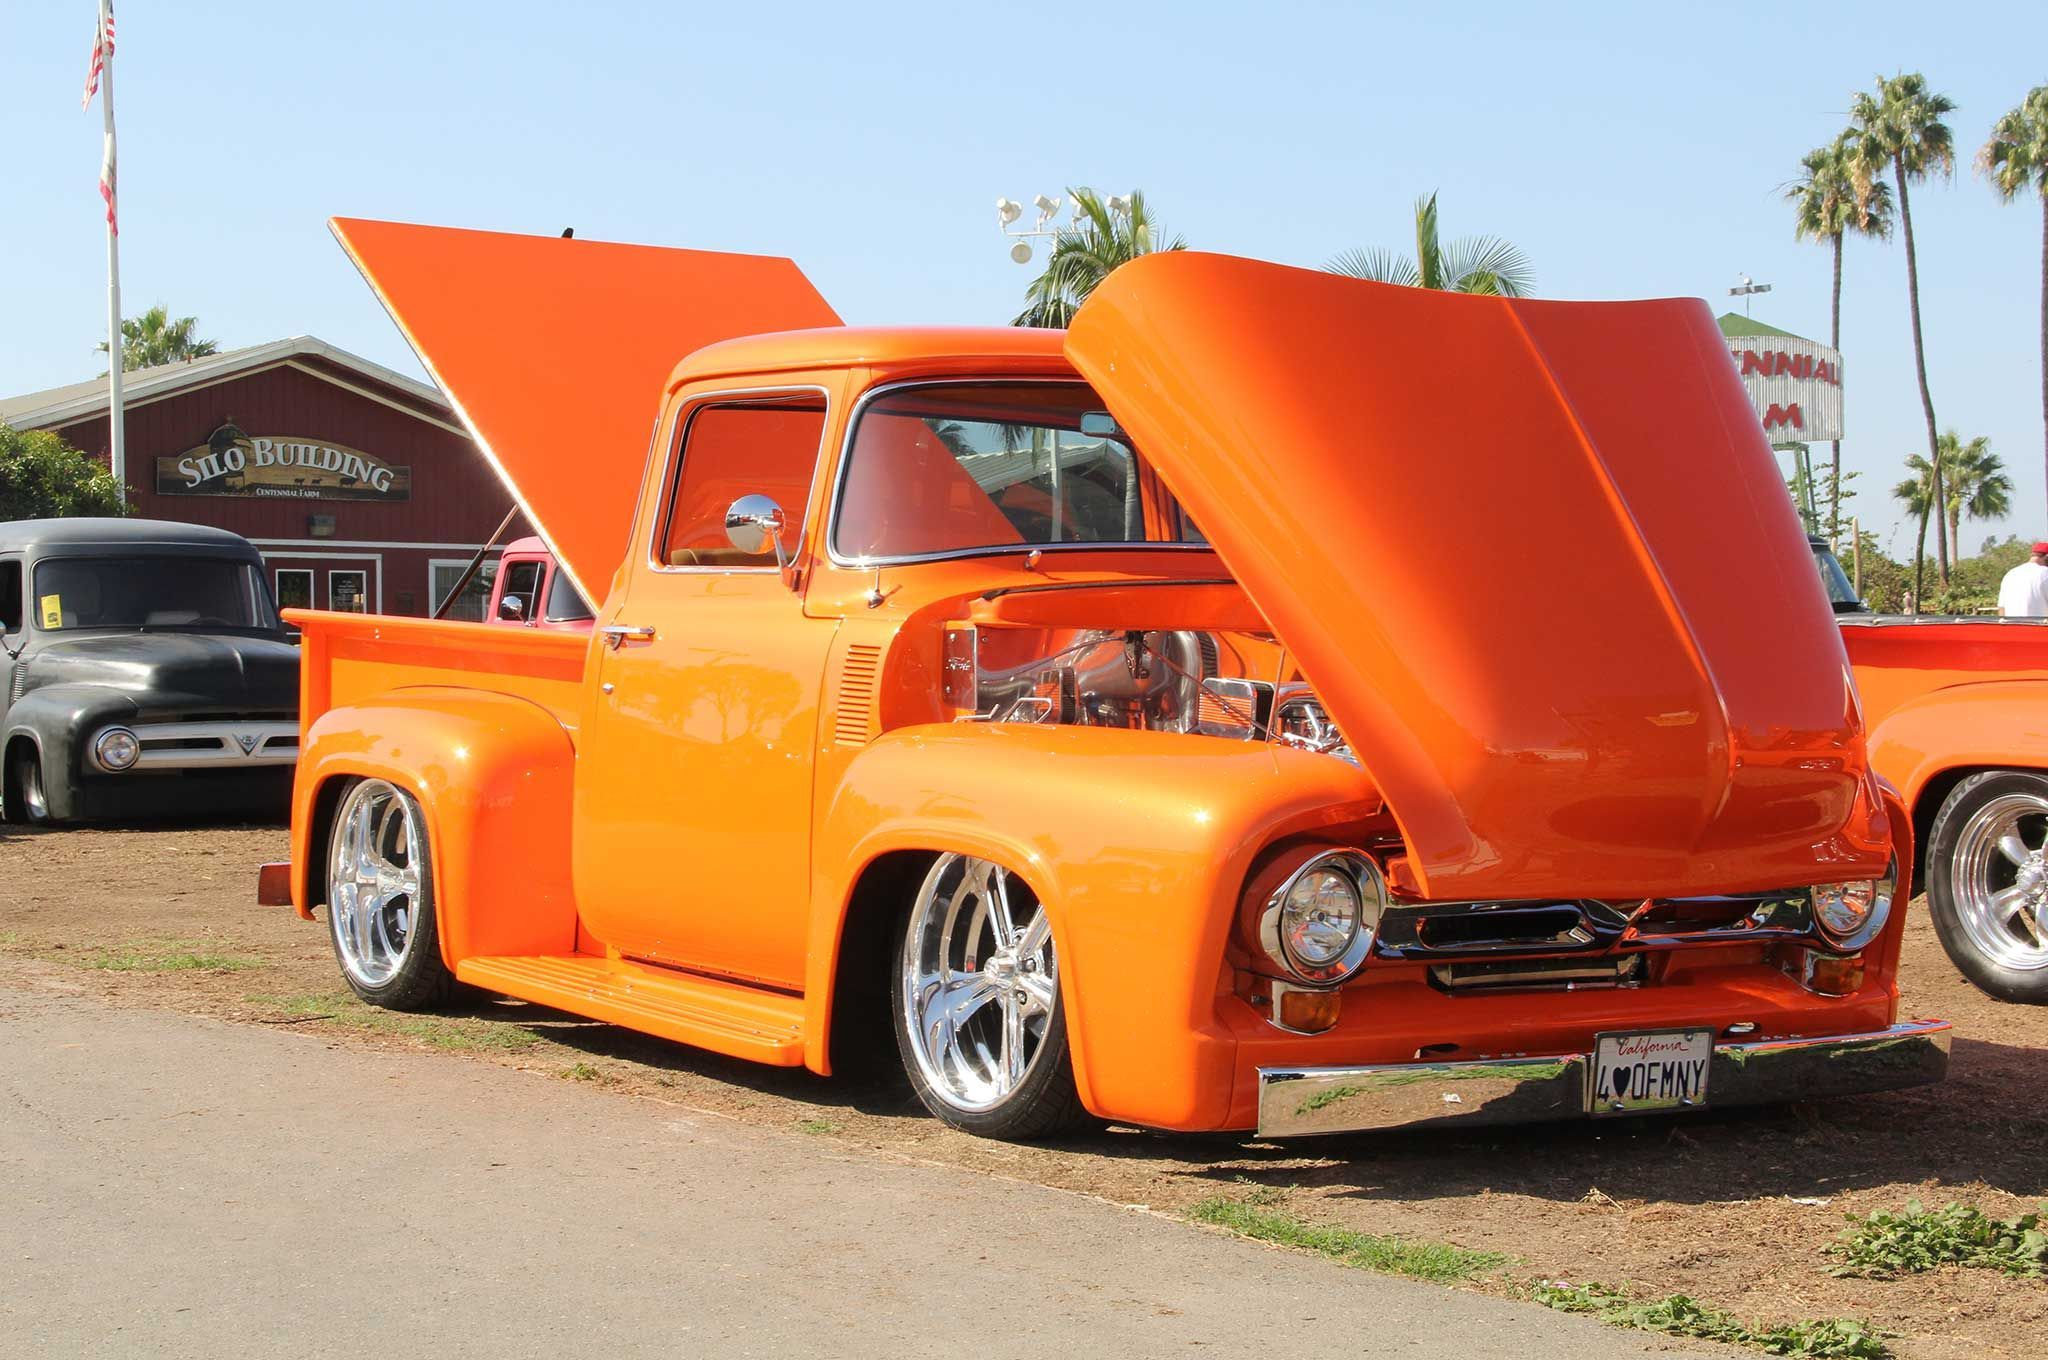 1956 chevy tattoo submited images pic2fly - Sick 56 Ford F100 56 Ford F100 Pinterest Ford Ford Trucks And Cars